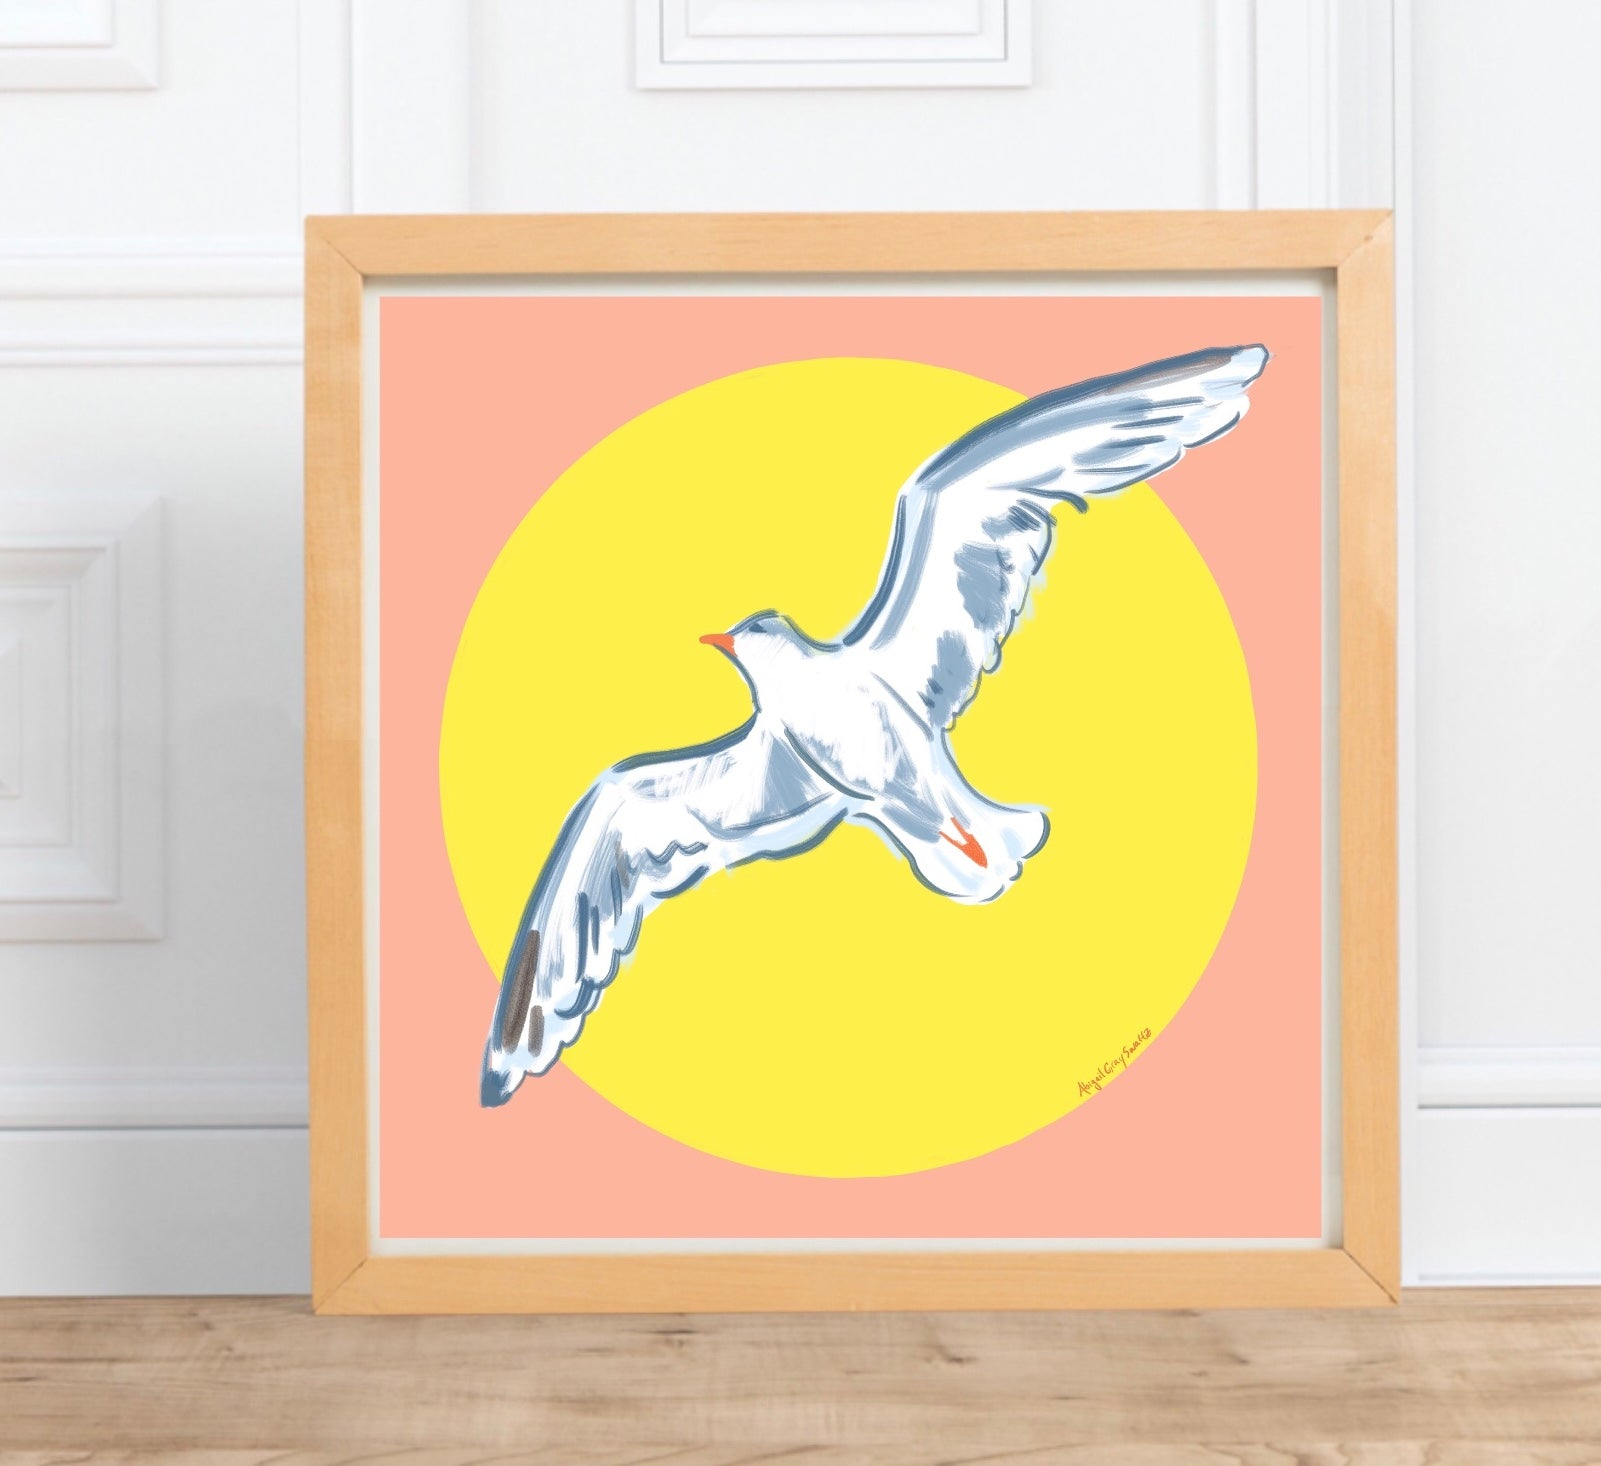 seagull art, seagull print, ocean art, bird art, pink and yellow print, bird print, artwork by Abigail Gray Swartz